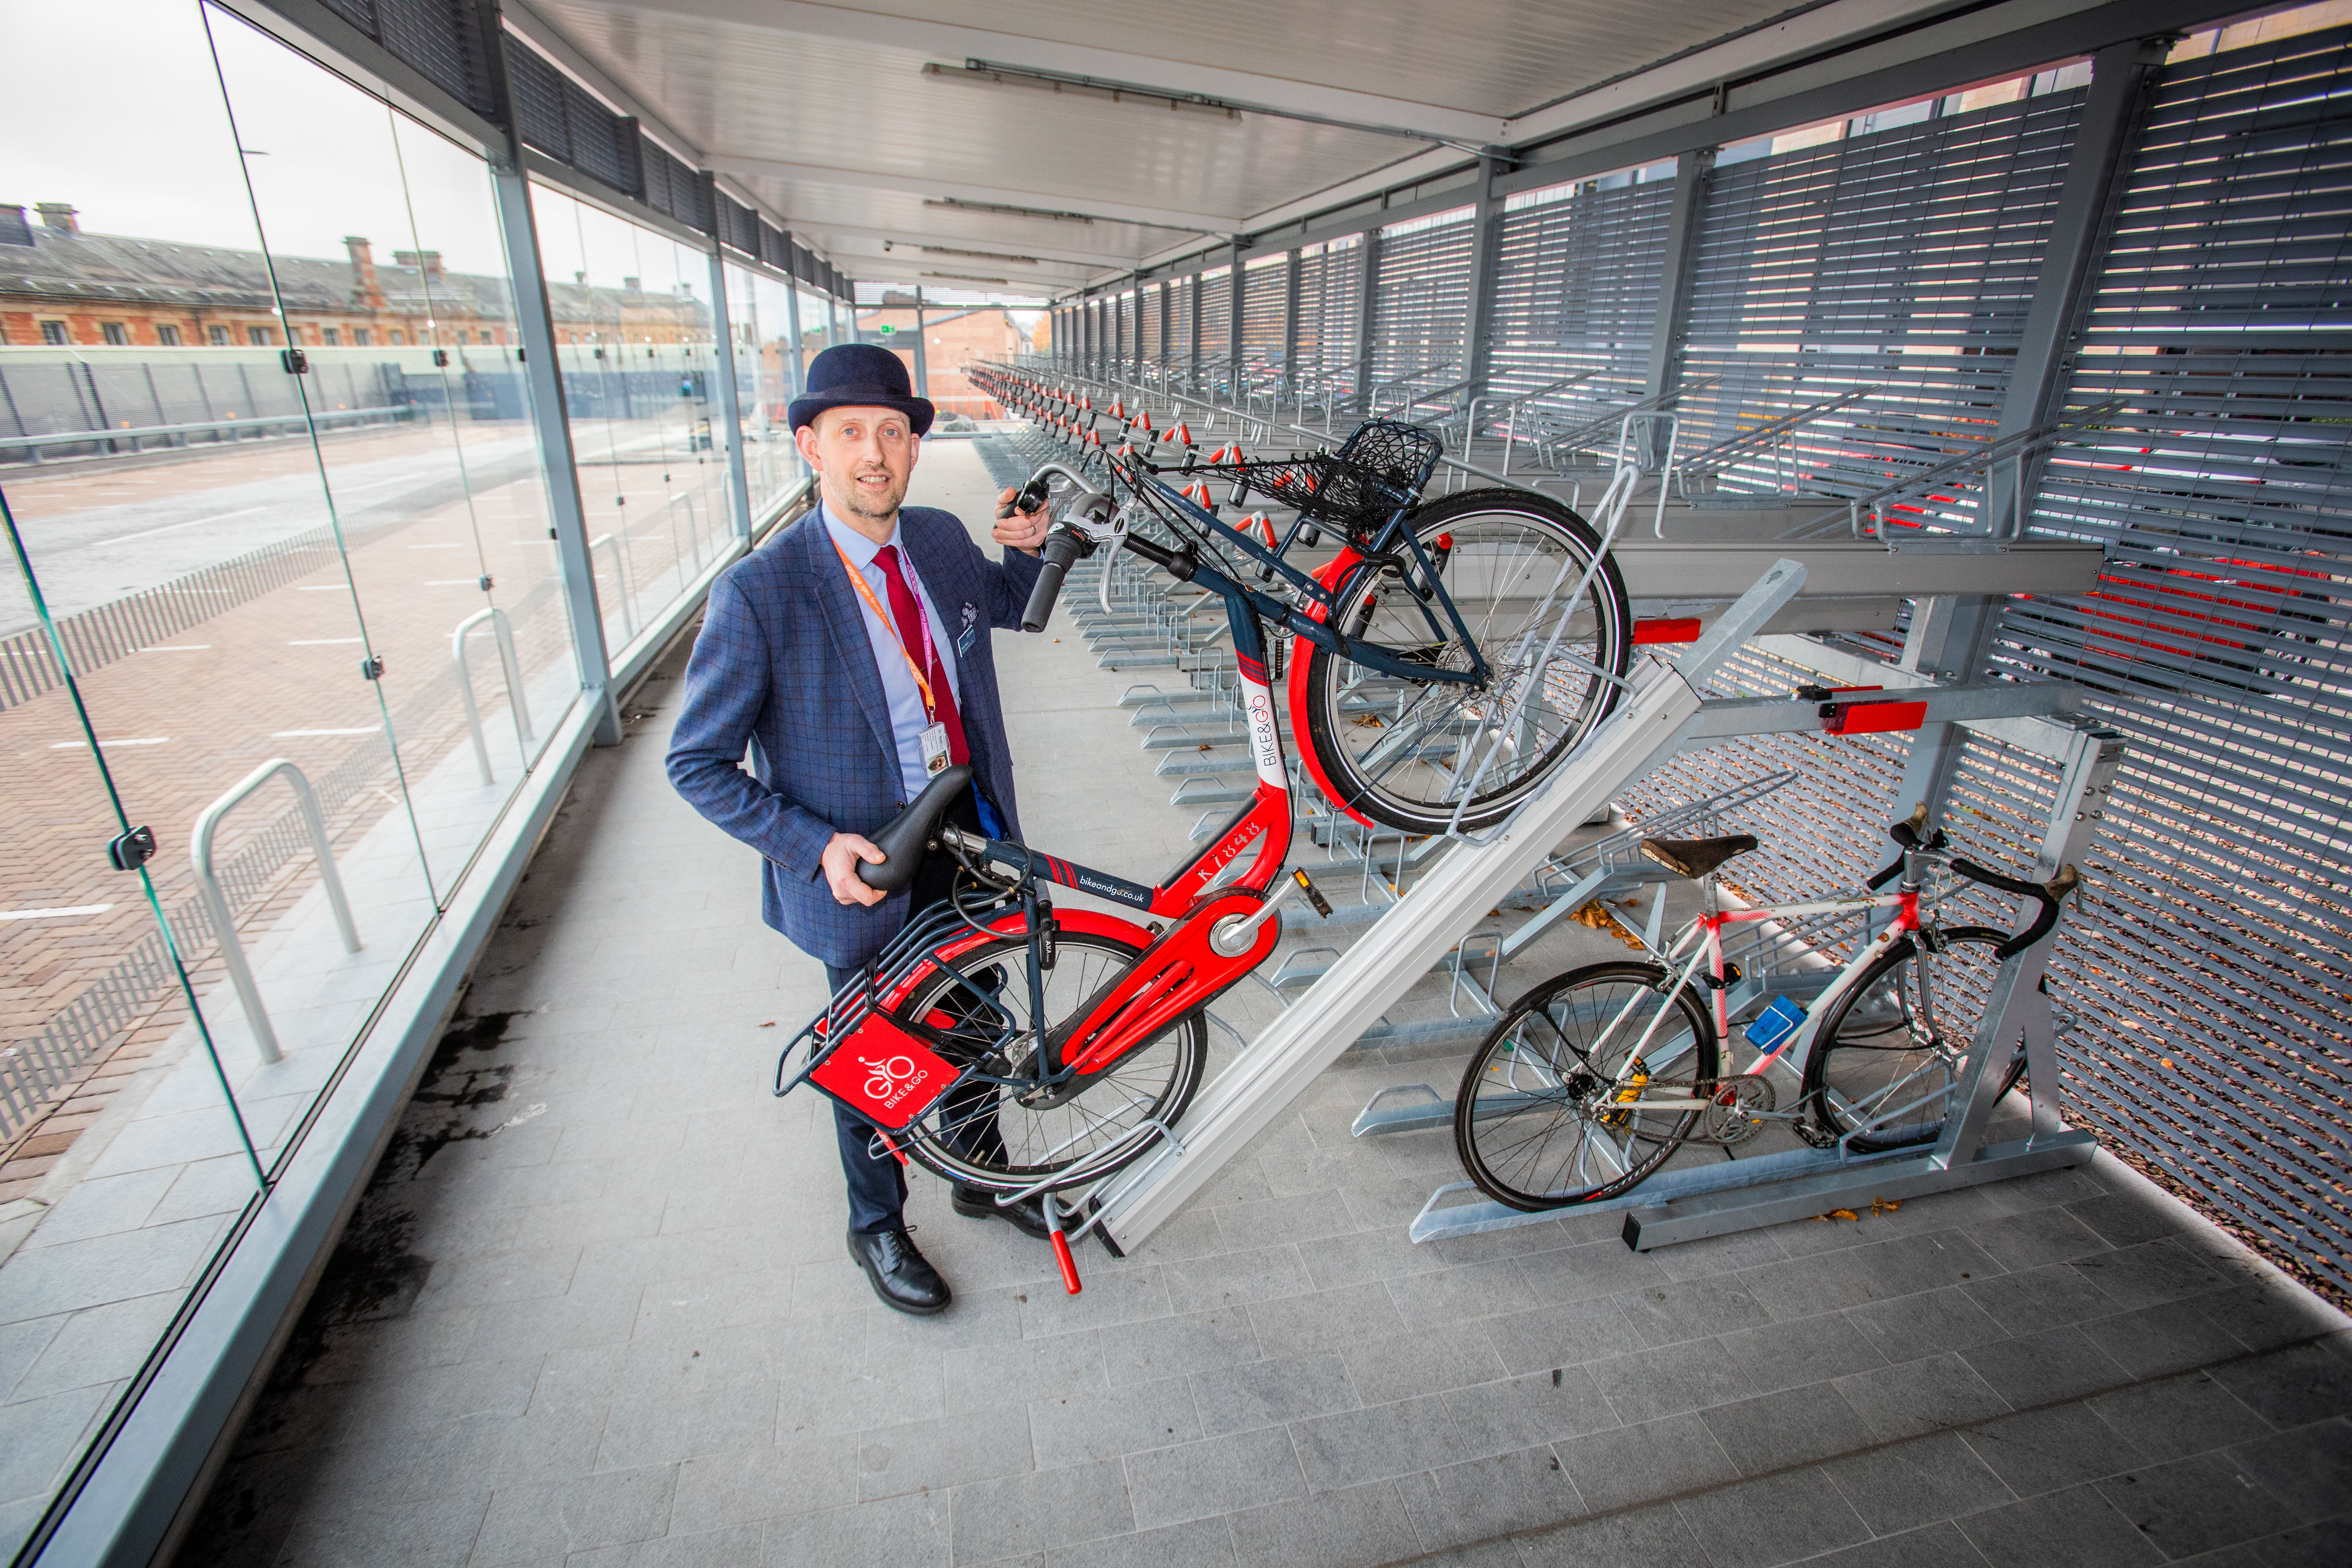 Dundee Railway Stations Cycle Hanger (Bike Park) officially opened today. Picture shows Steve Ewen (Scotrail Area Manager) in the cycle hanger. Dundee Train (Railway) Station, City Centre, Dundee. Monday 5th November 2018 Pic Credit - Steve MacDougall / DCT Media